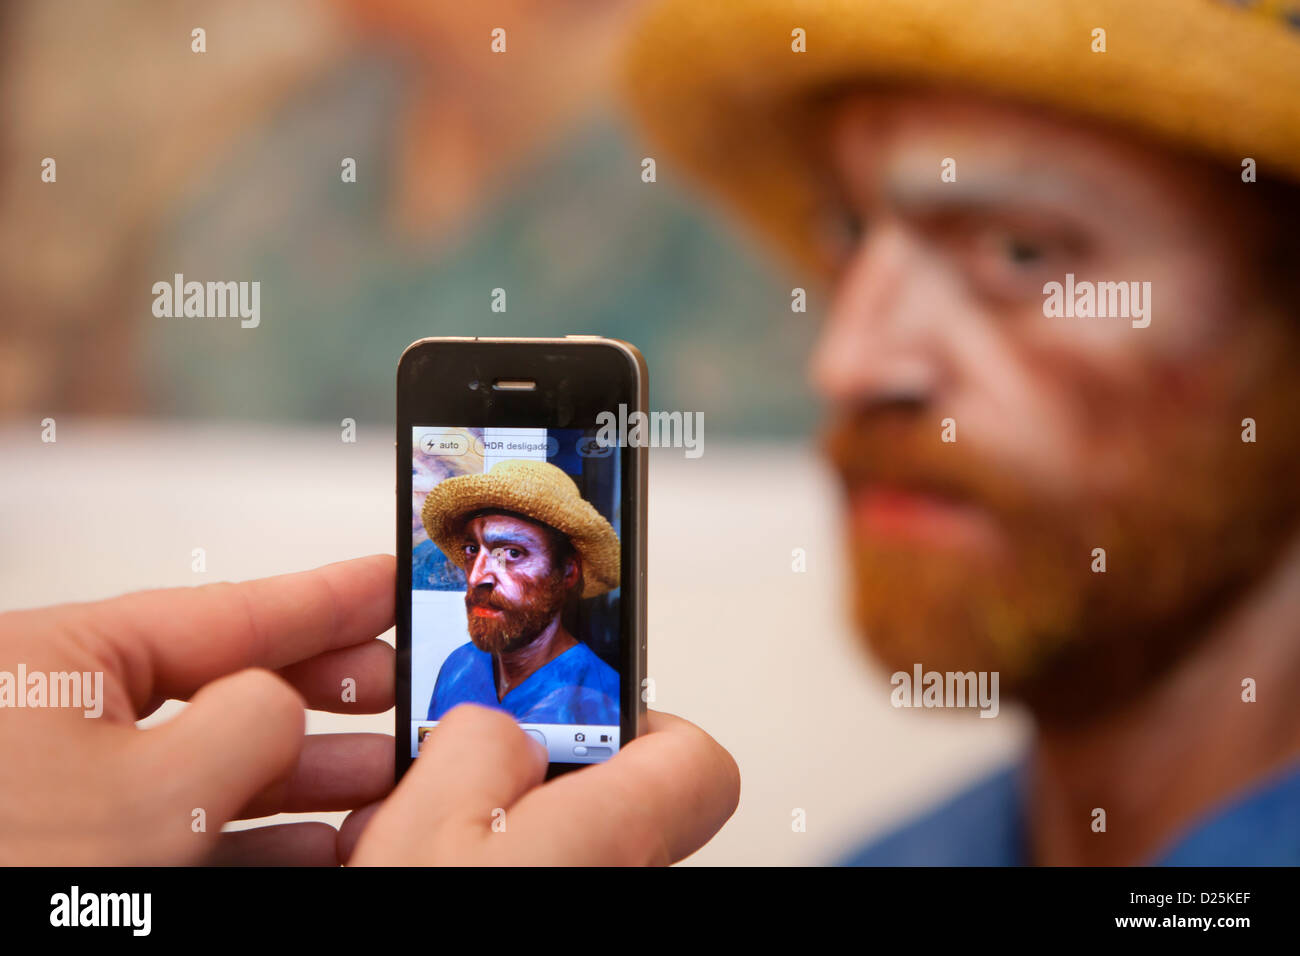 Taking a photo of Van Gogh. - Stock Image